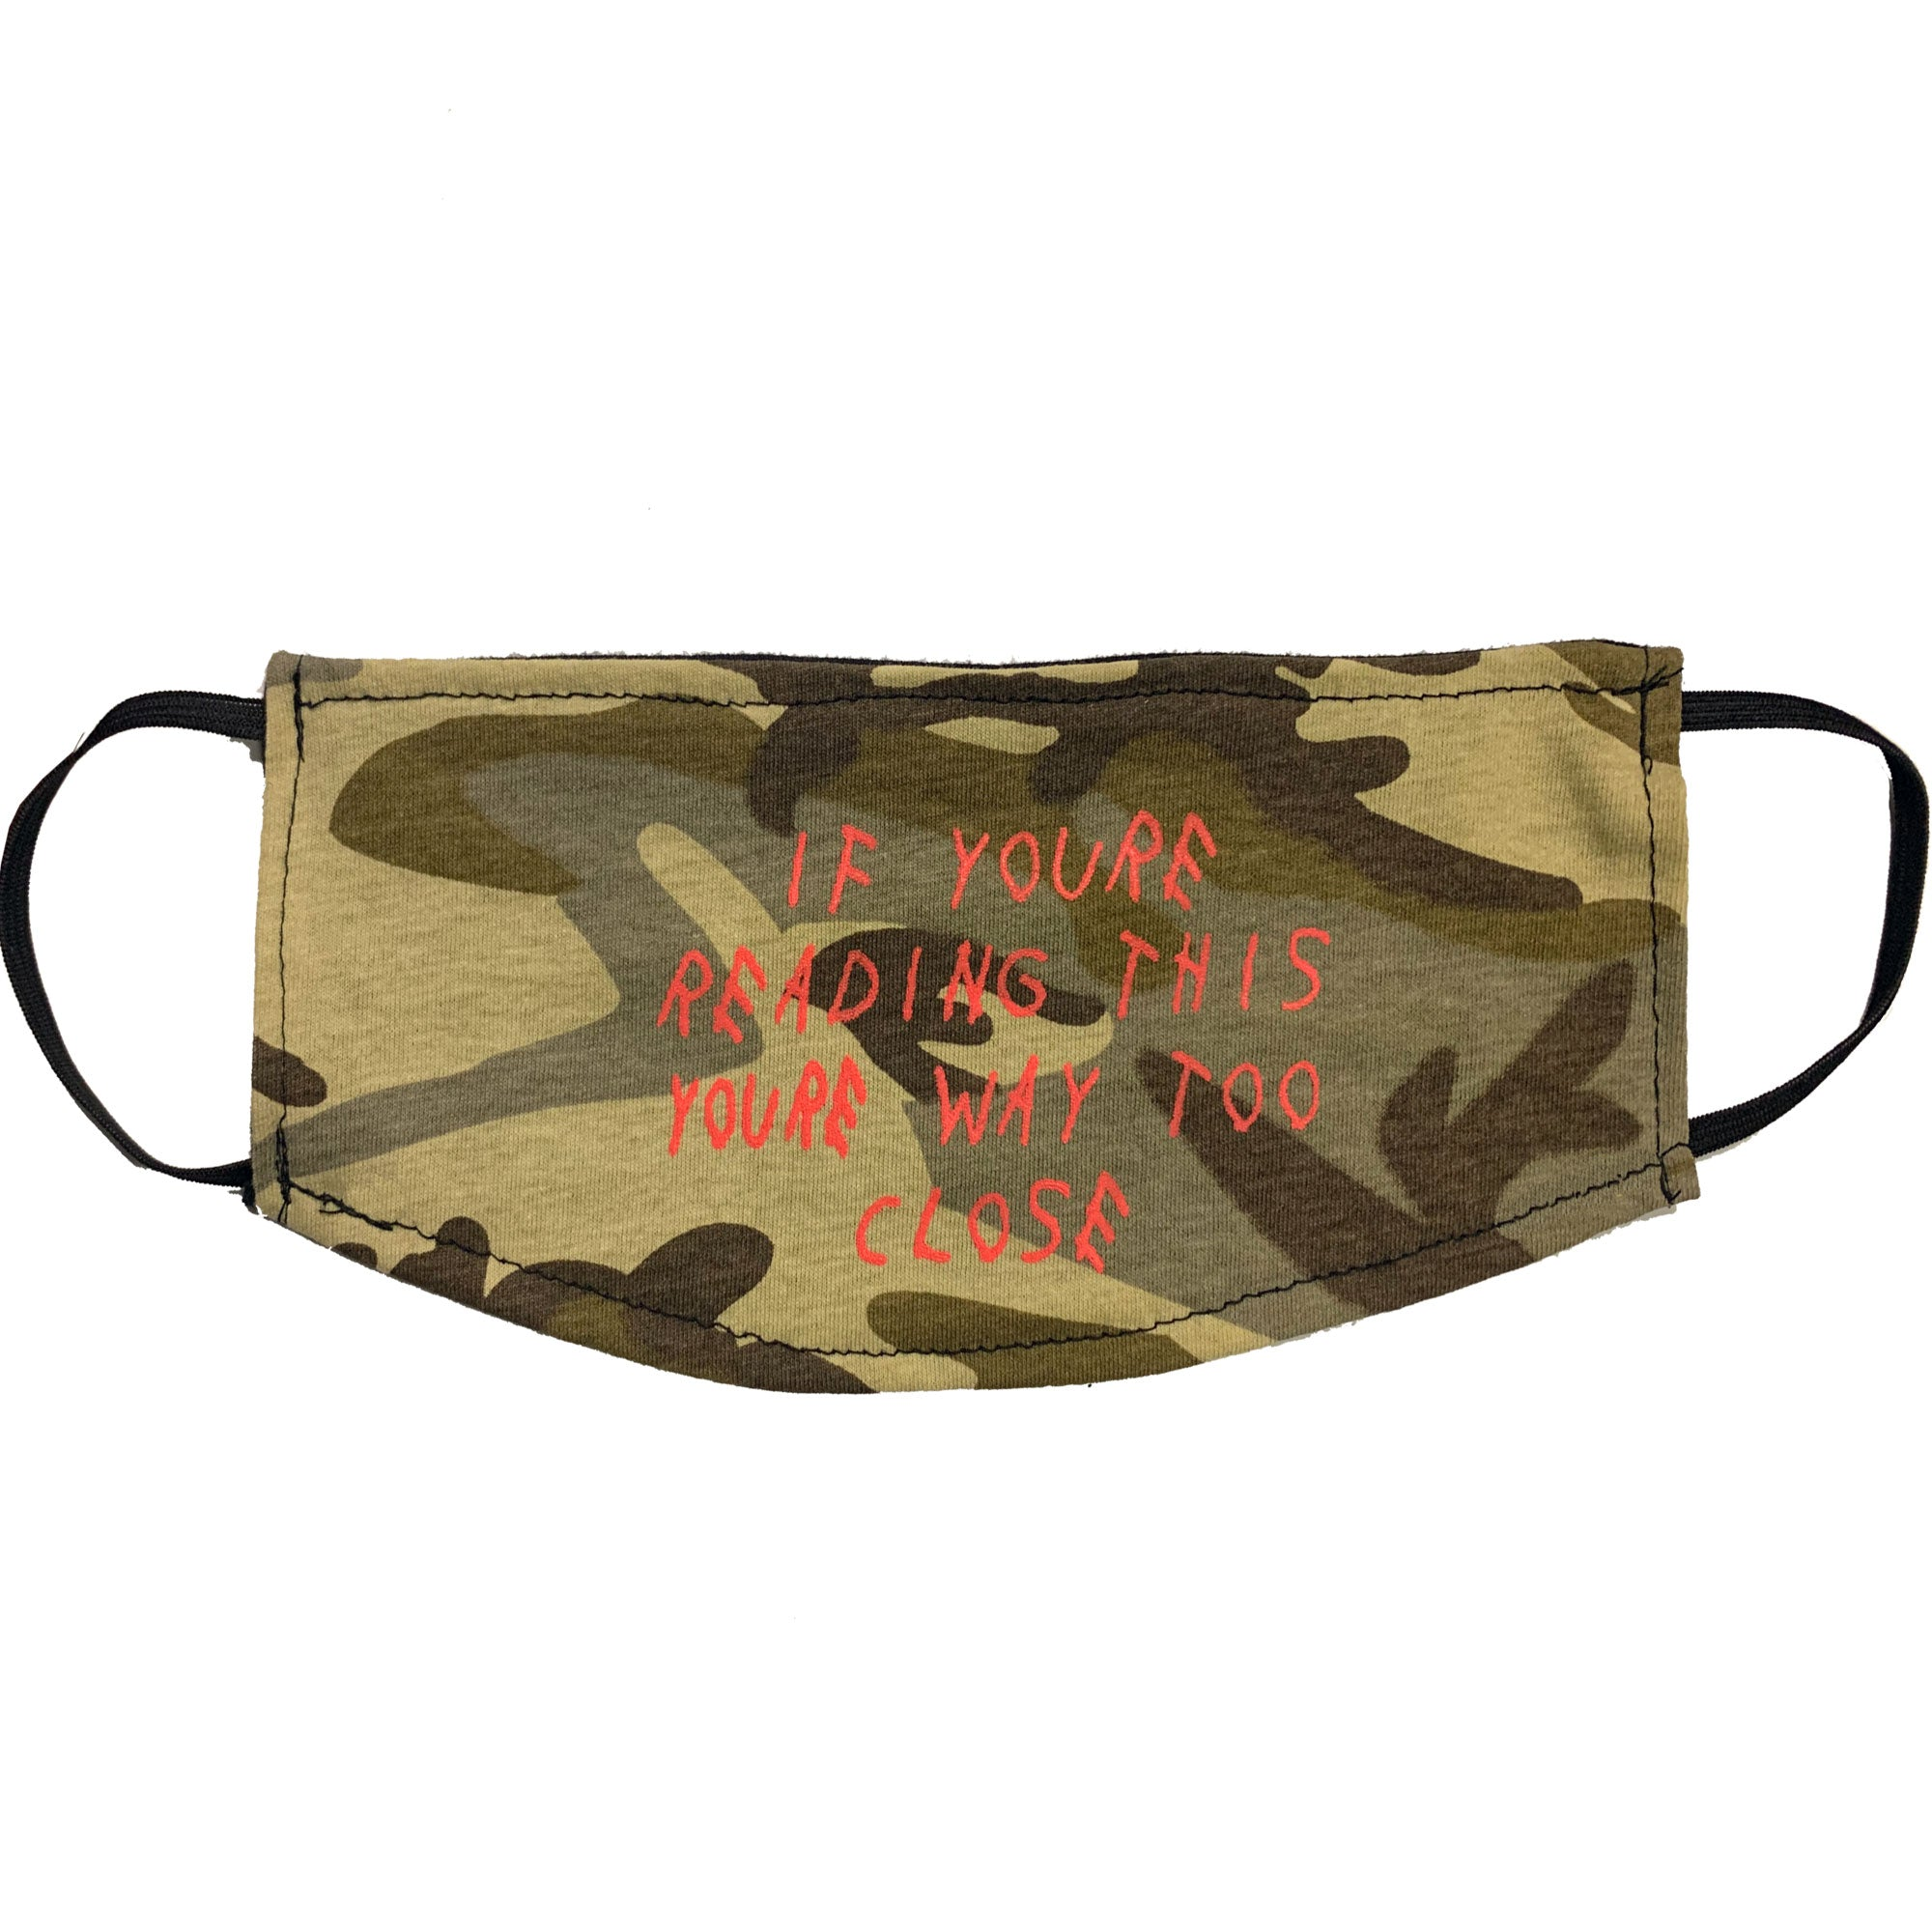 Adult Face Mask - Too Close Desert Camo Design